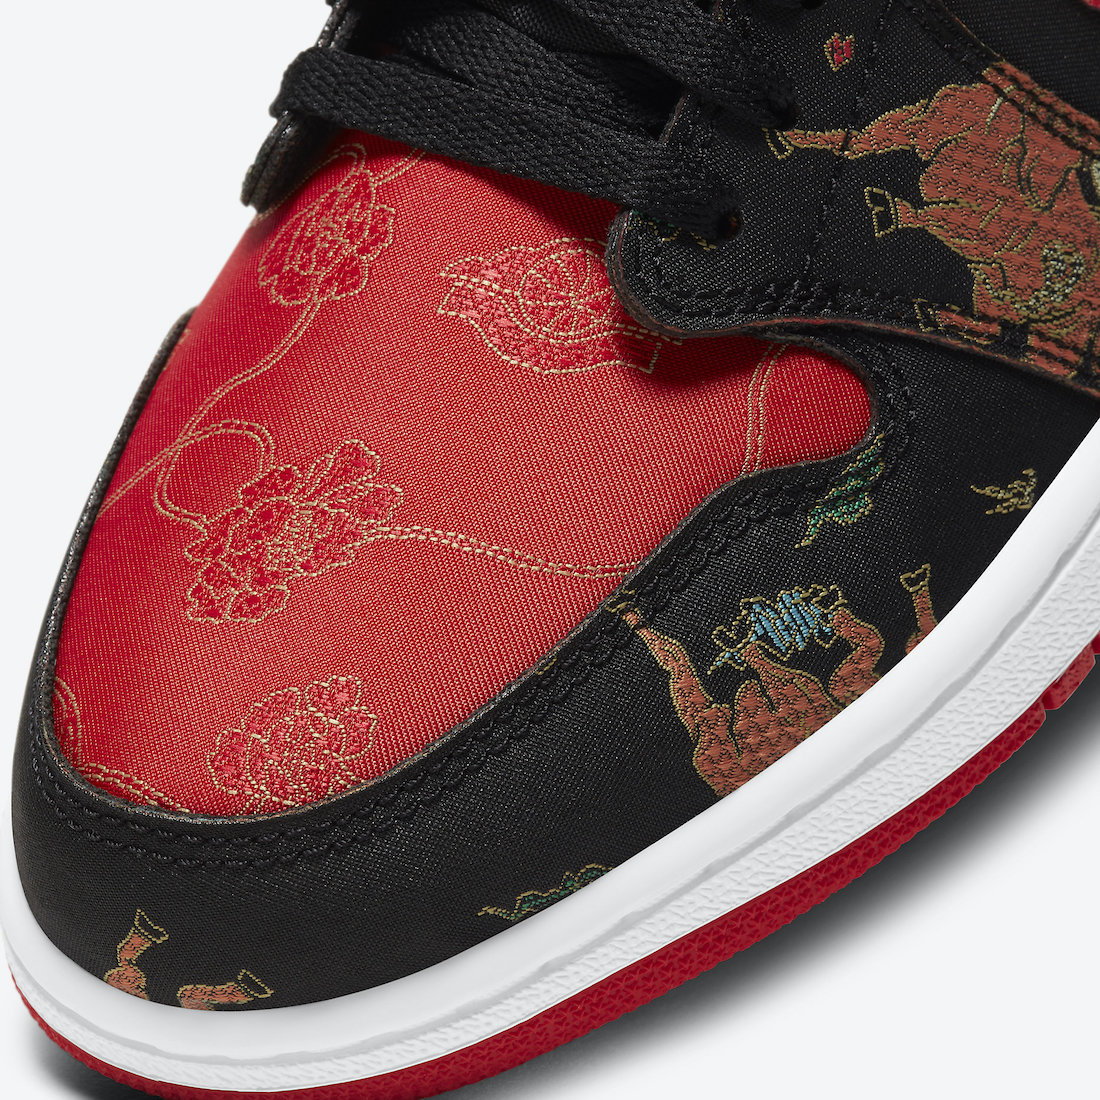 Air-Jordan-1-Low-CNY-Chinese-New-Year-DD2233-001-Release-Date-6